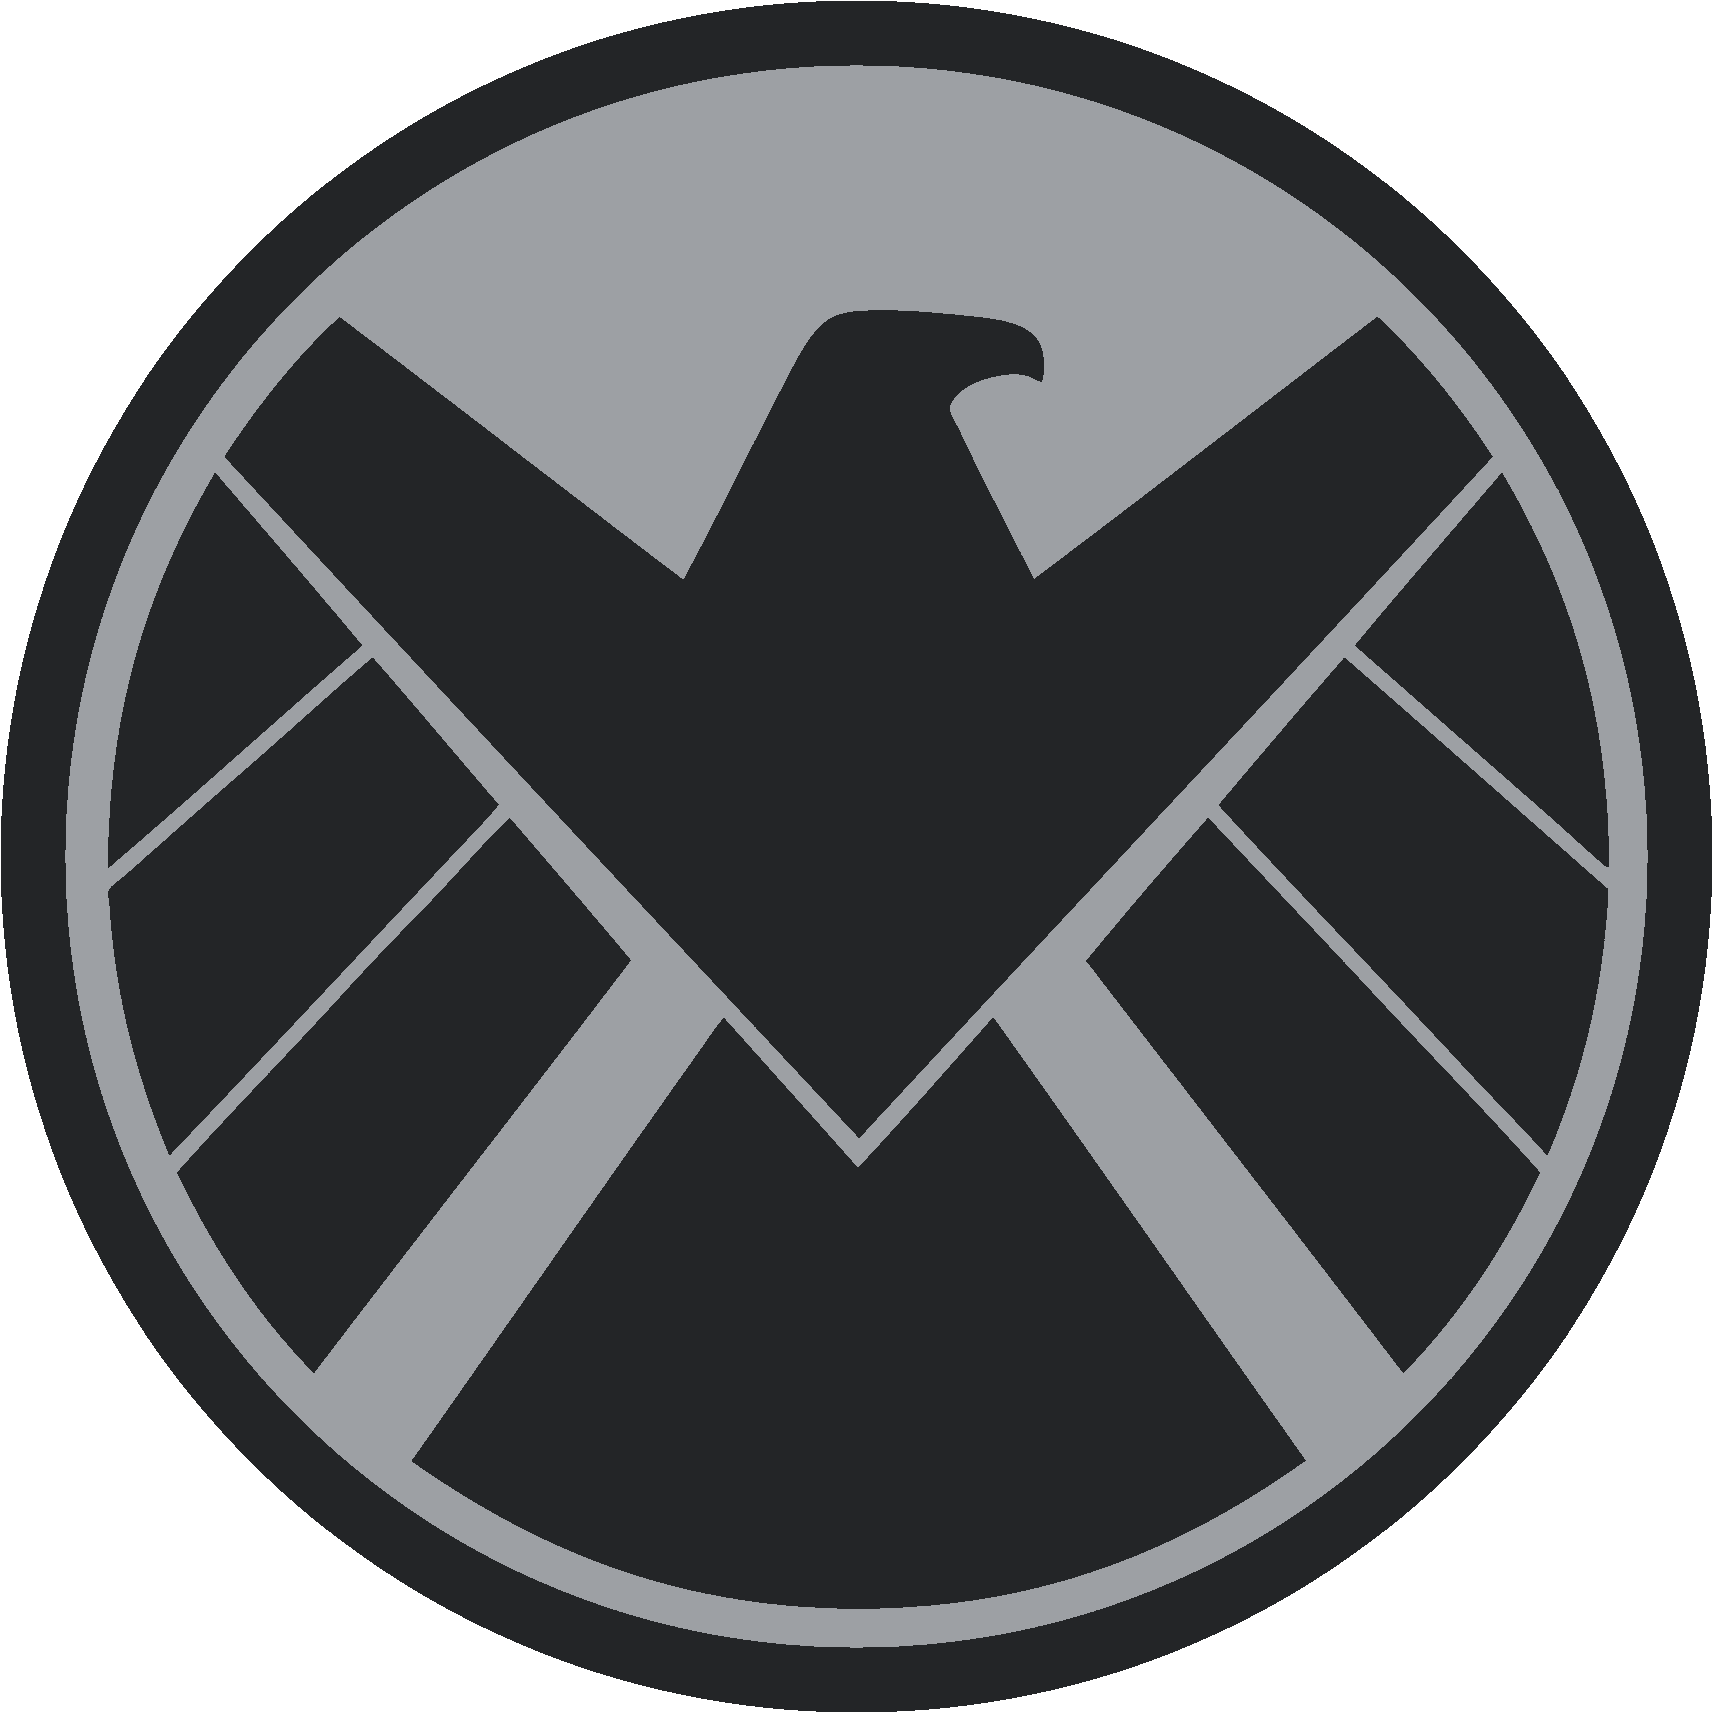 Shield logo png. Battle of sokovia marvel